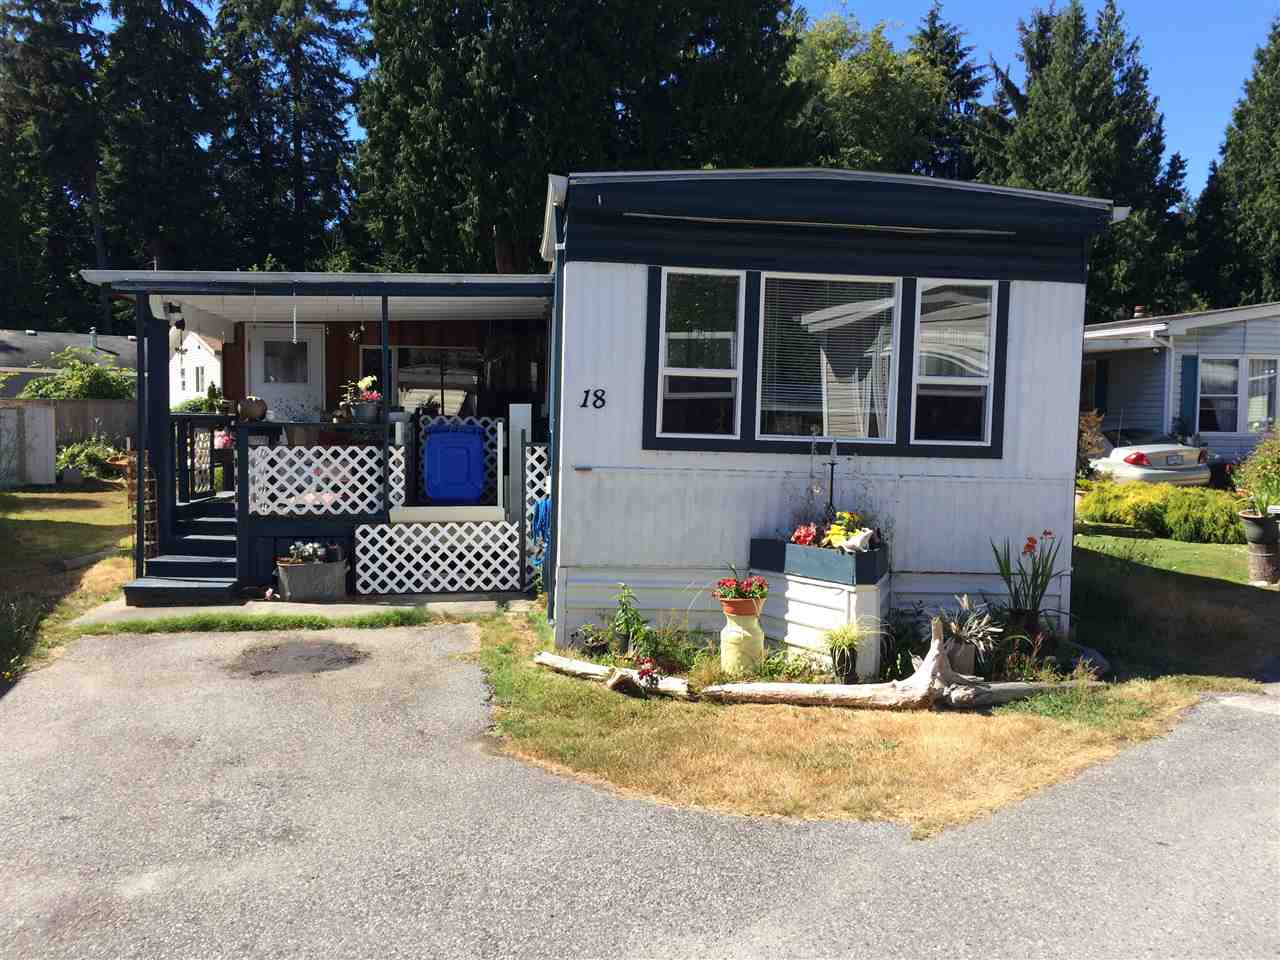 4496 SUNSHINE COAST HIGHWAY 18, Sechelt, BC V0N 3A1